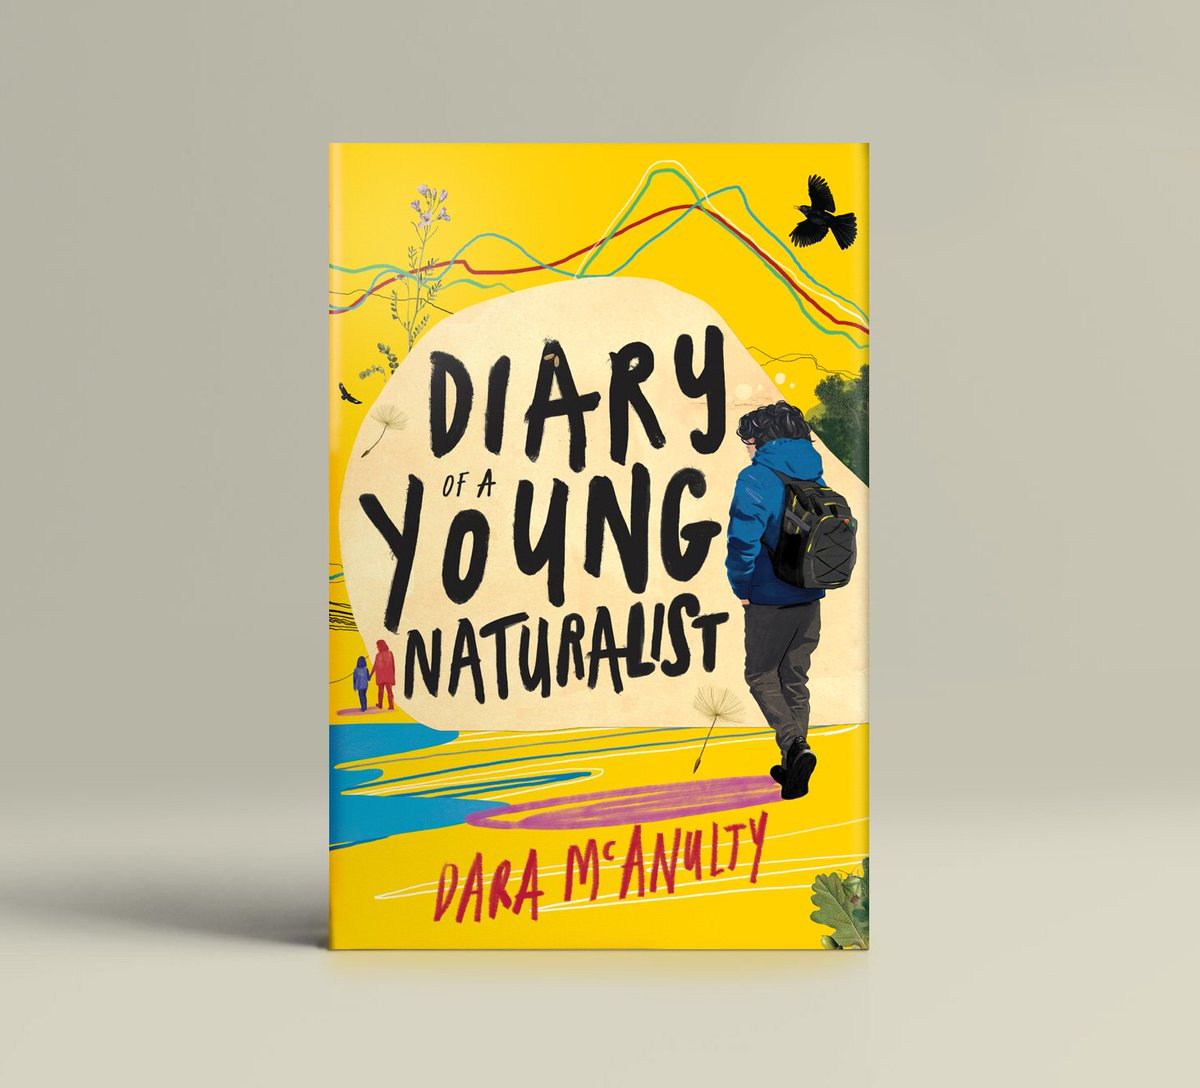 When I was 13, a seed was planted...a book. I never thought it was possible because the bullies said I was 'a nothing autistic freak'. I honed my passion for nature and words though, and decided I wouldn't let them win. The book will be out next June with @LittleToller ! ✊